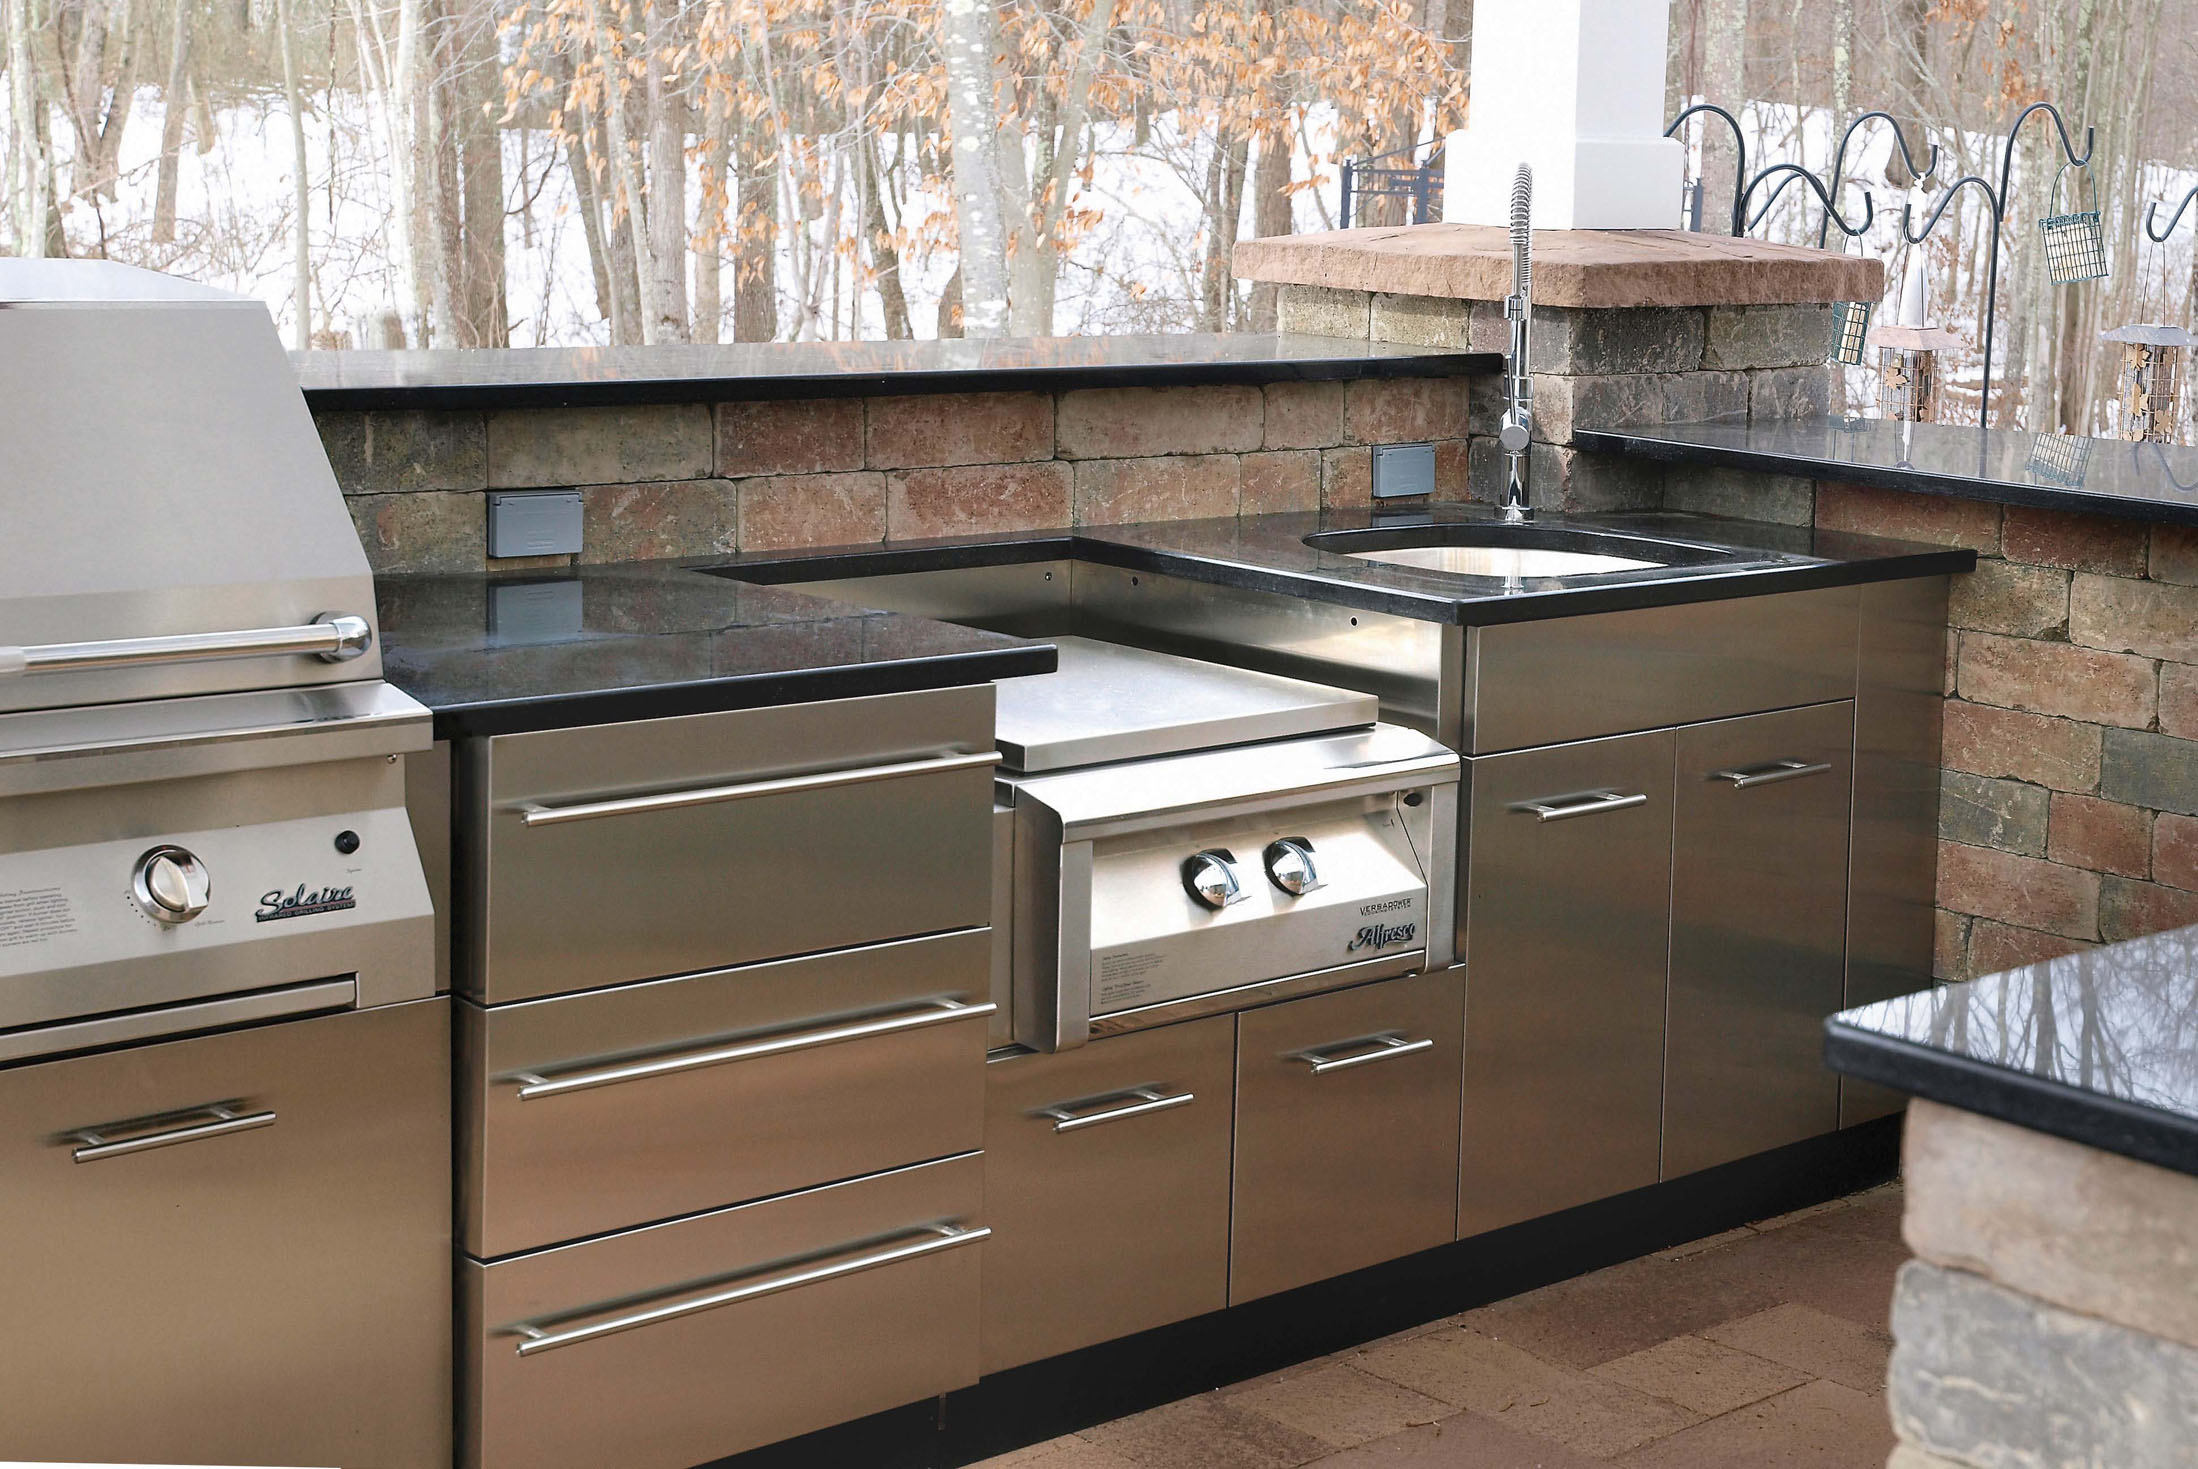 Outdoor Stainless Kitchen in winter in CT